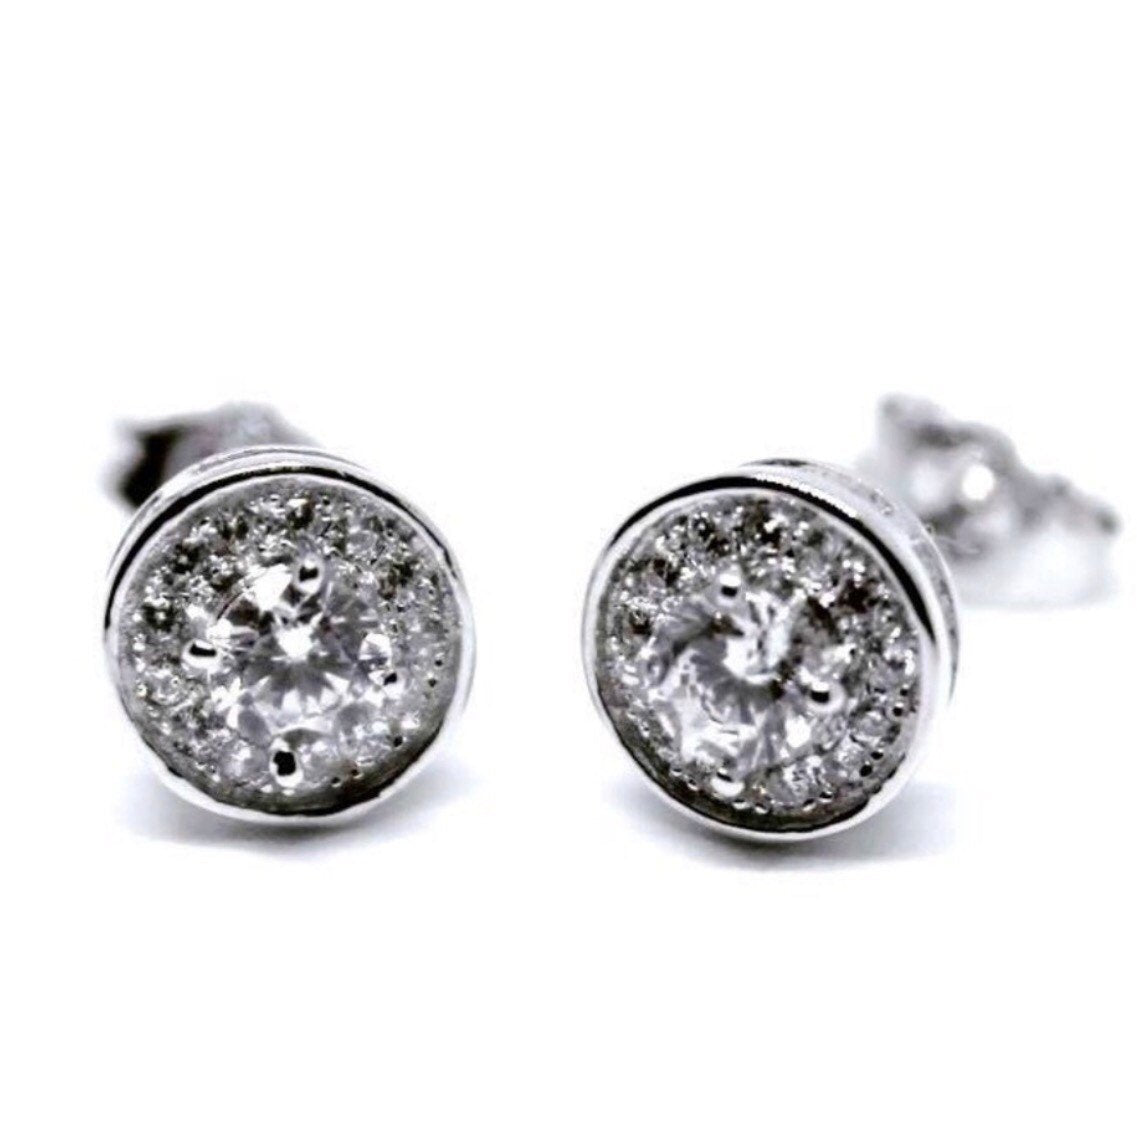 14k White Gold on 925 Silver Round Earrings - 3 Royal Dazzy